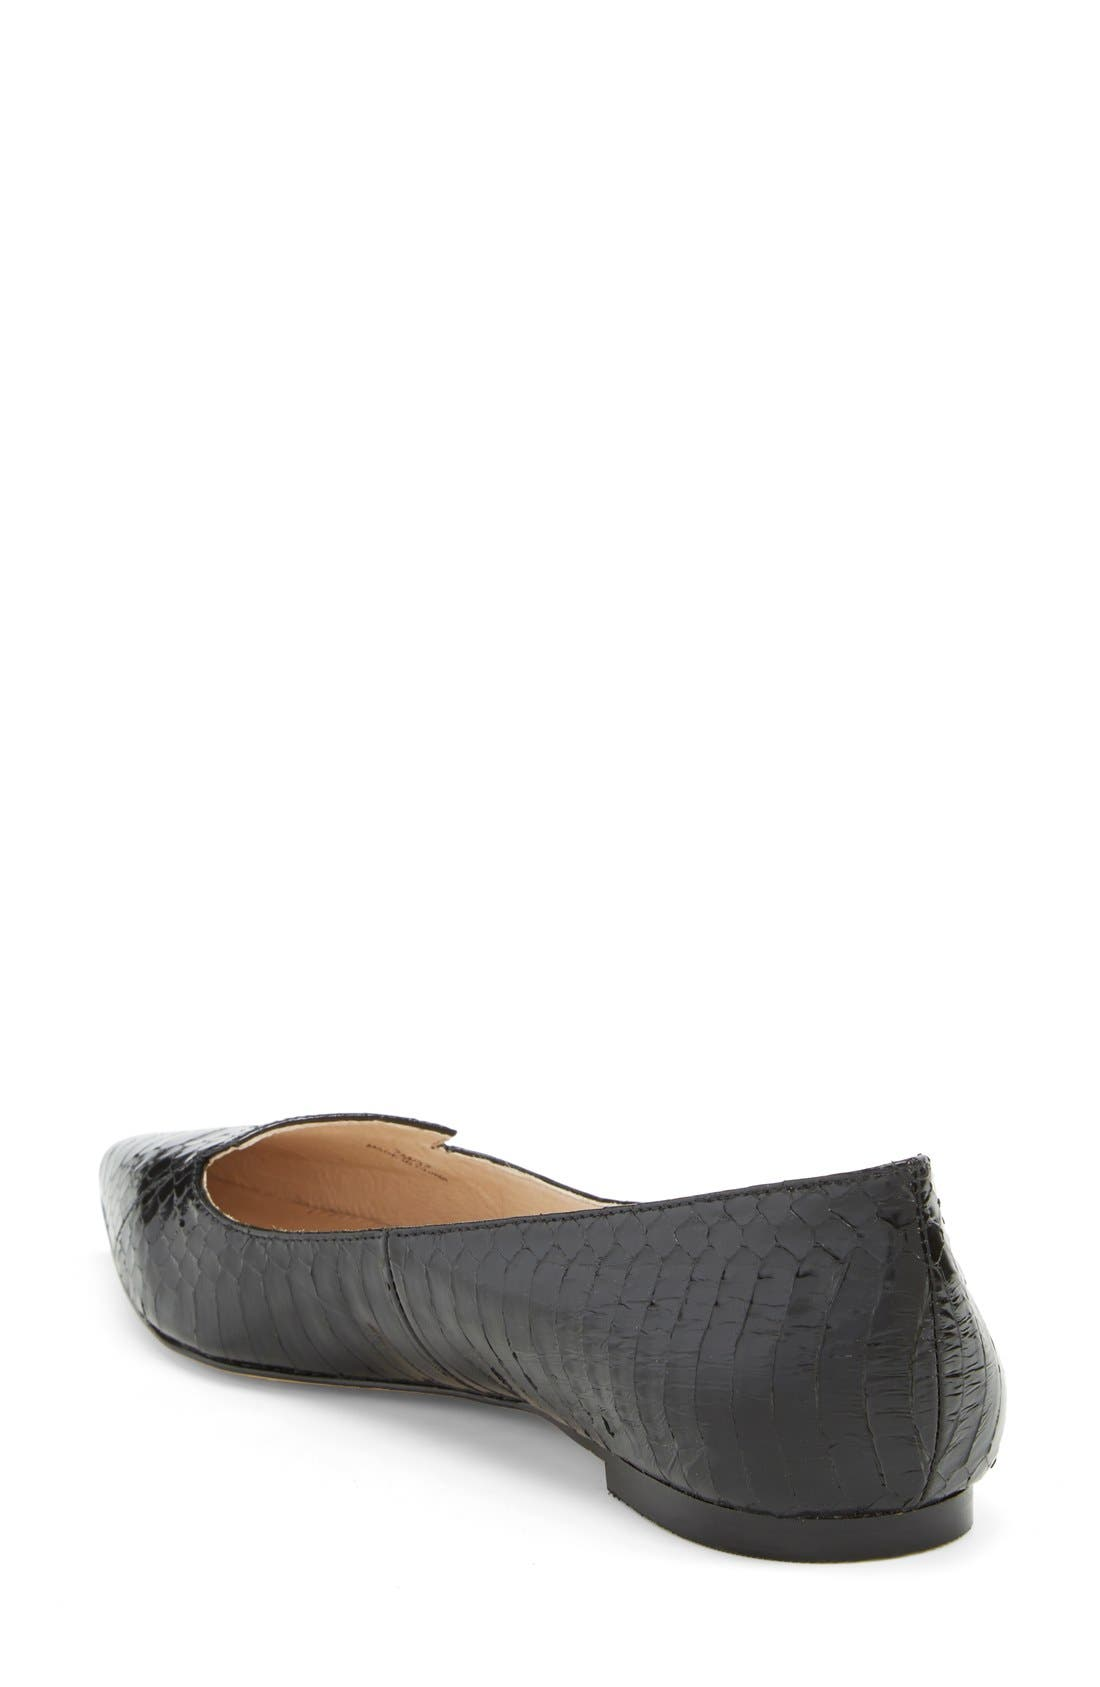 VINCE CAMUTO, 'Empa' Pointy Toe Loafer Flat, Alternate thumbnail 3, color, 001